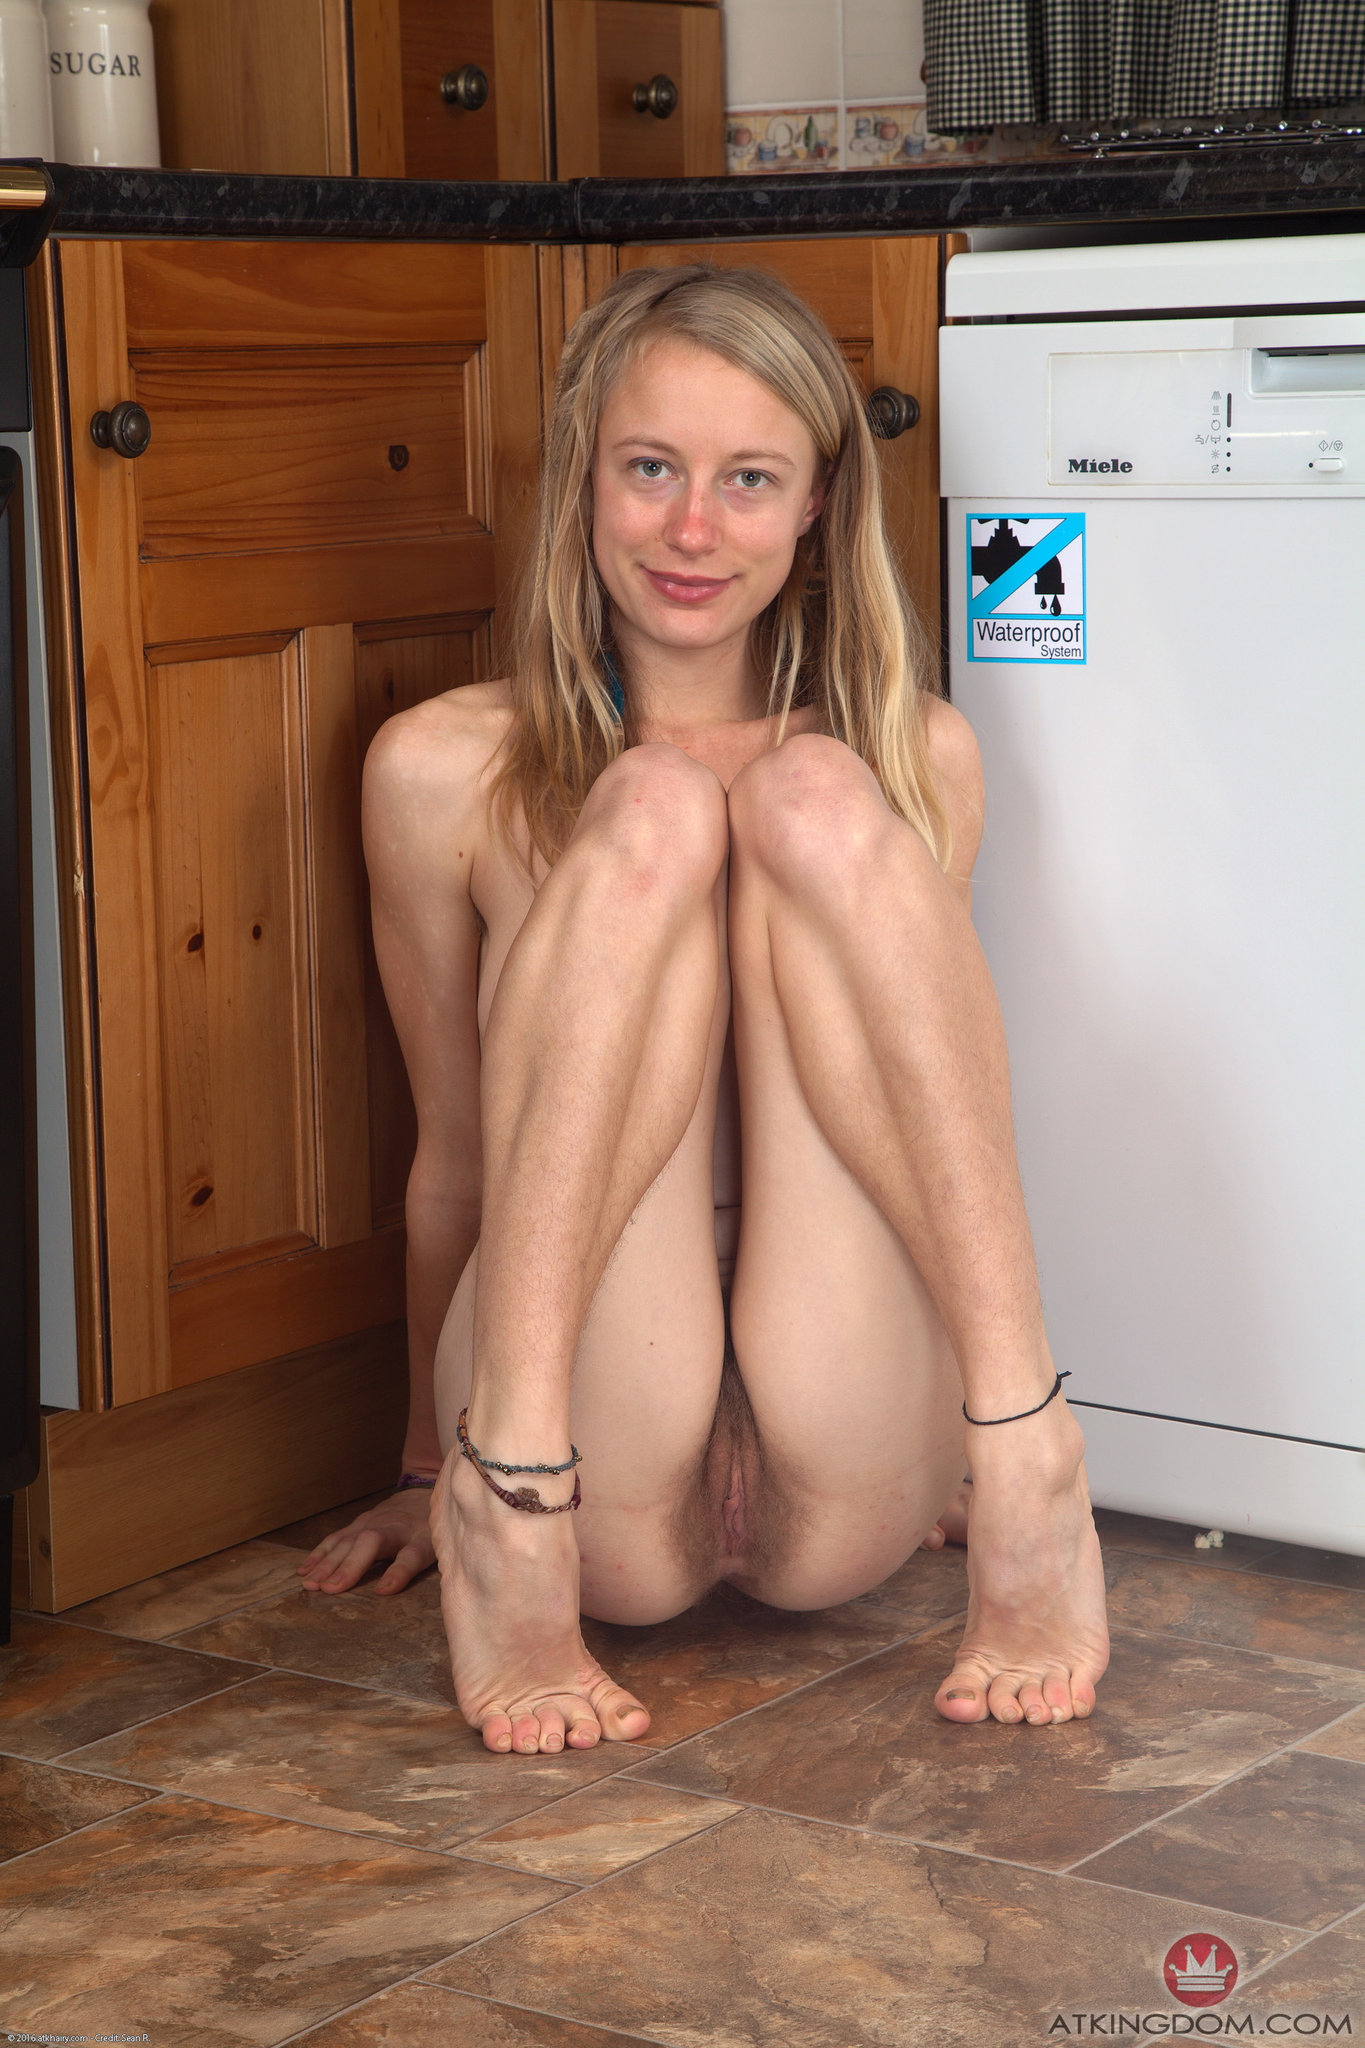 a woman named Selena spreading her pussy and posing nude